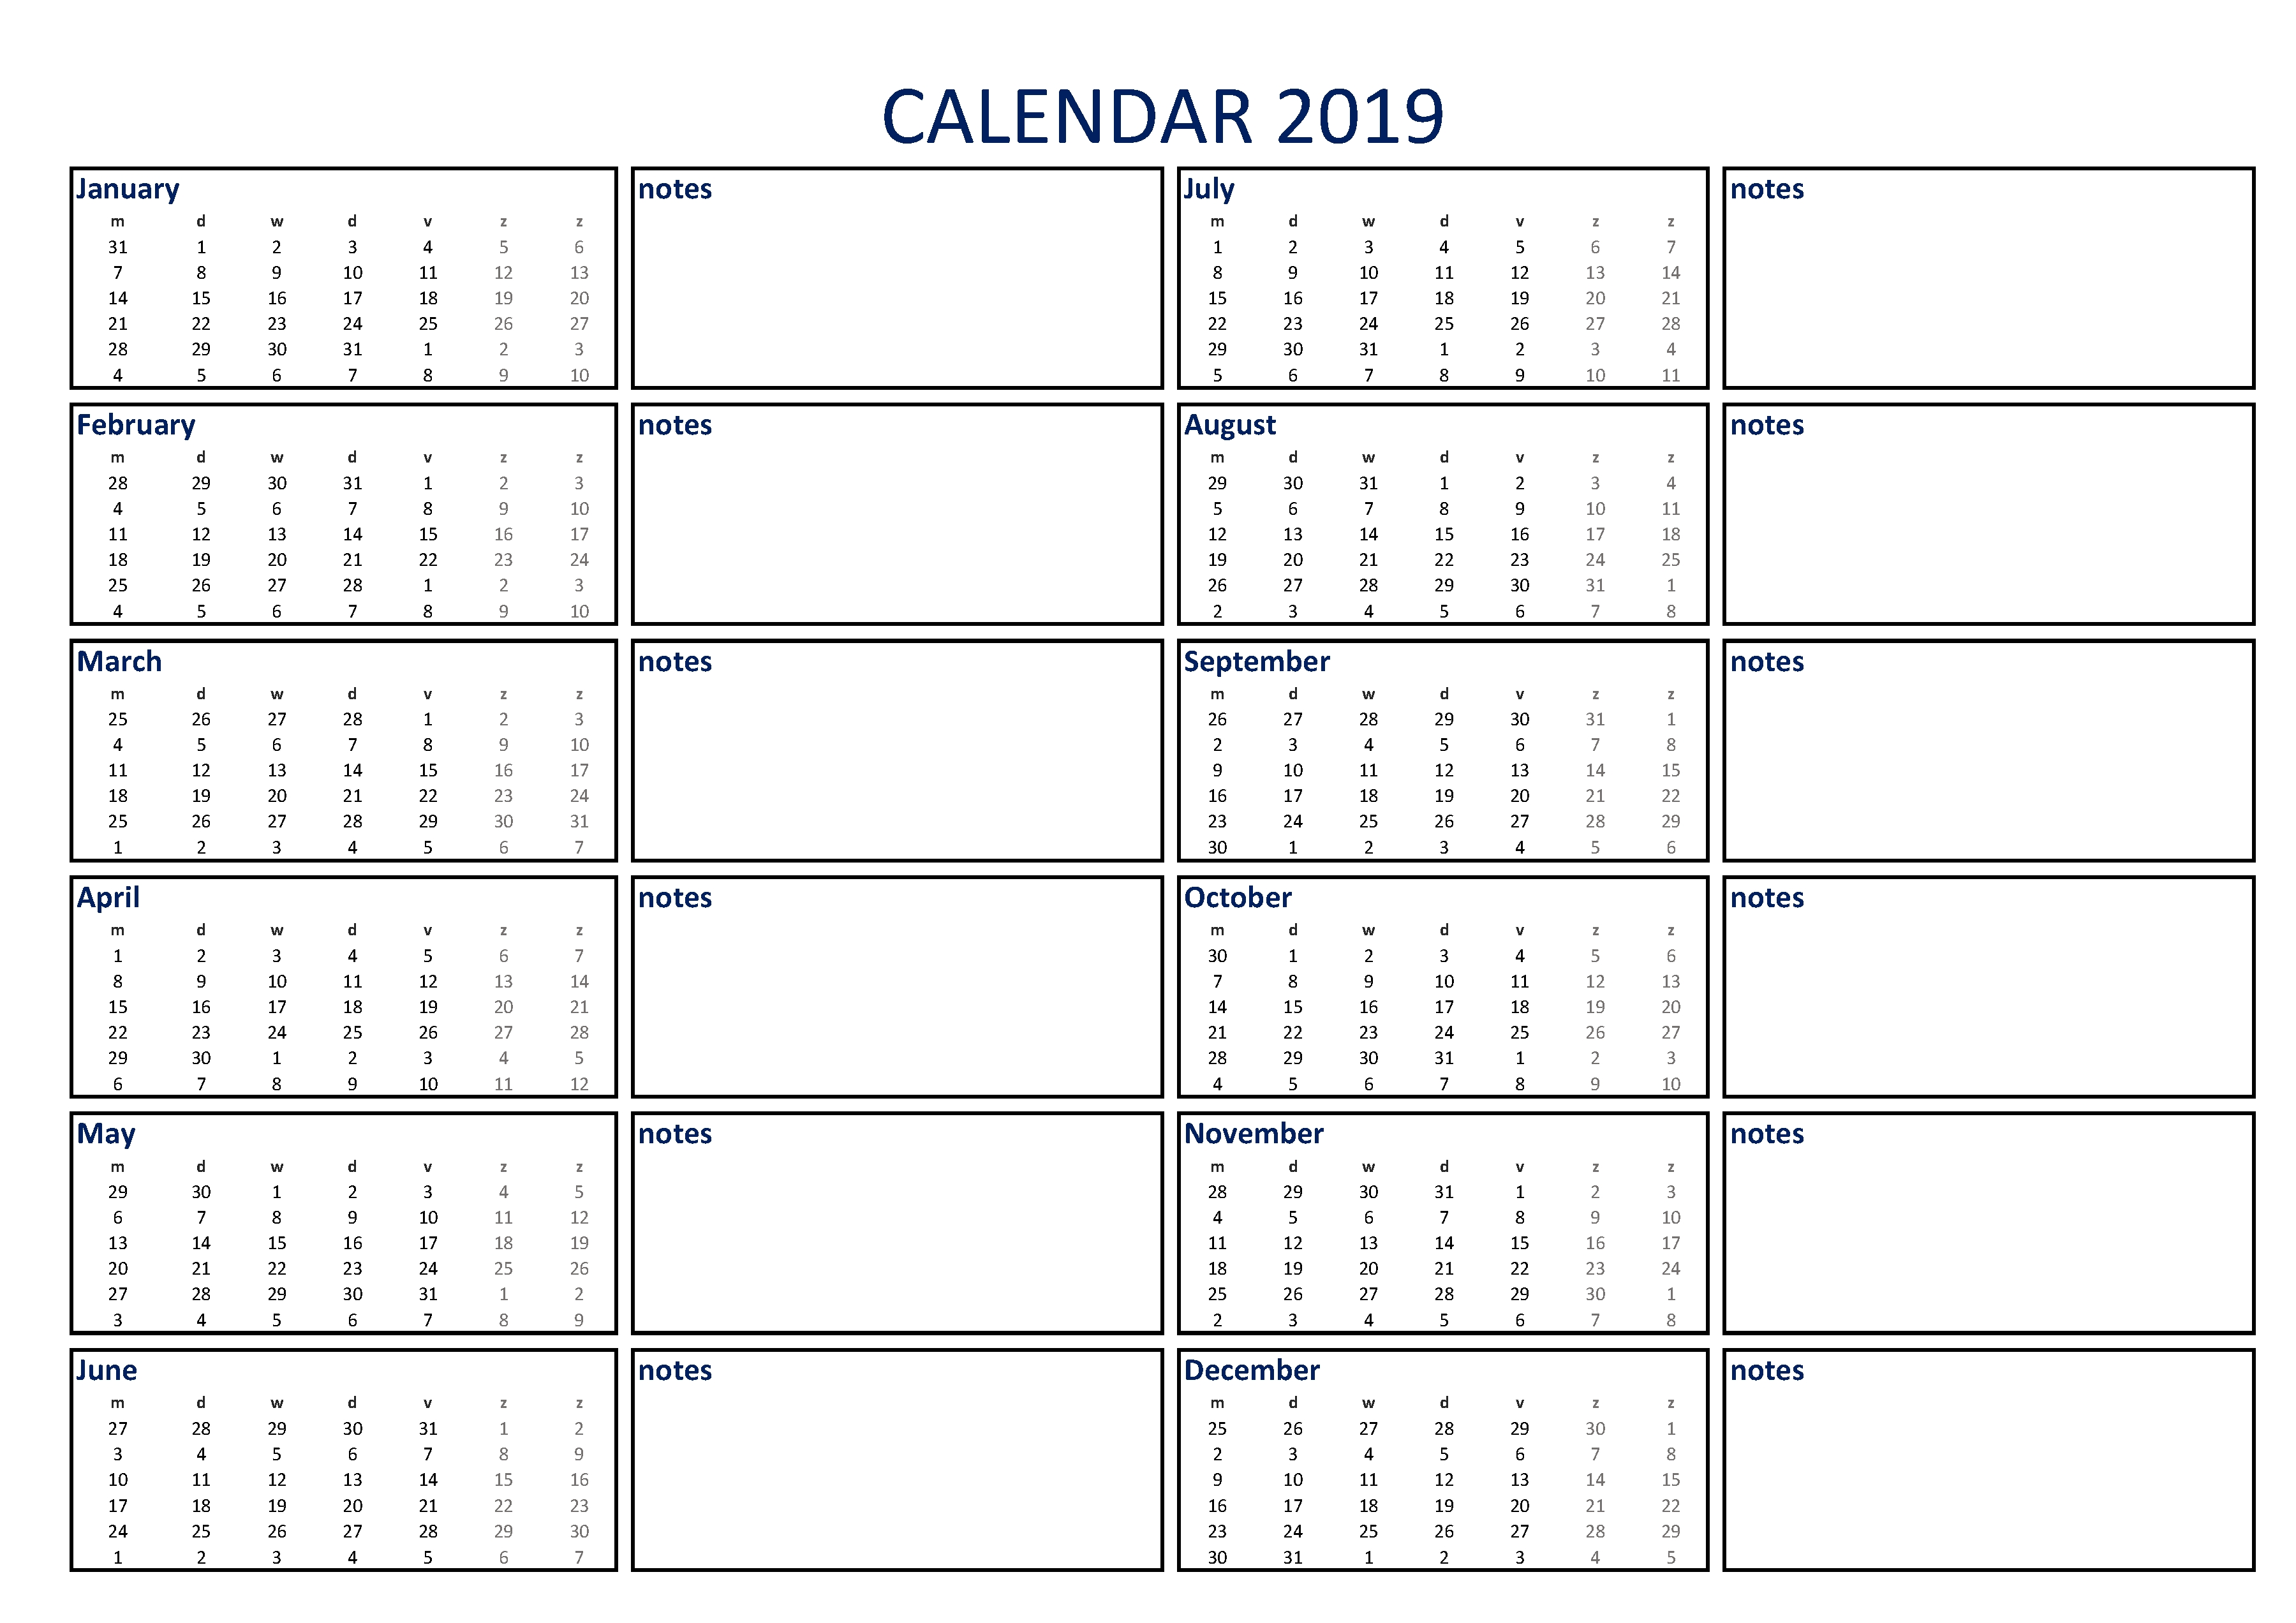 Free Calendar 2019 With Notes A4   Templates At Calendar 2019 Leave